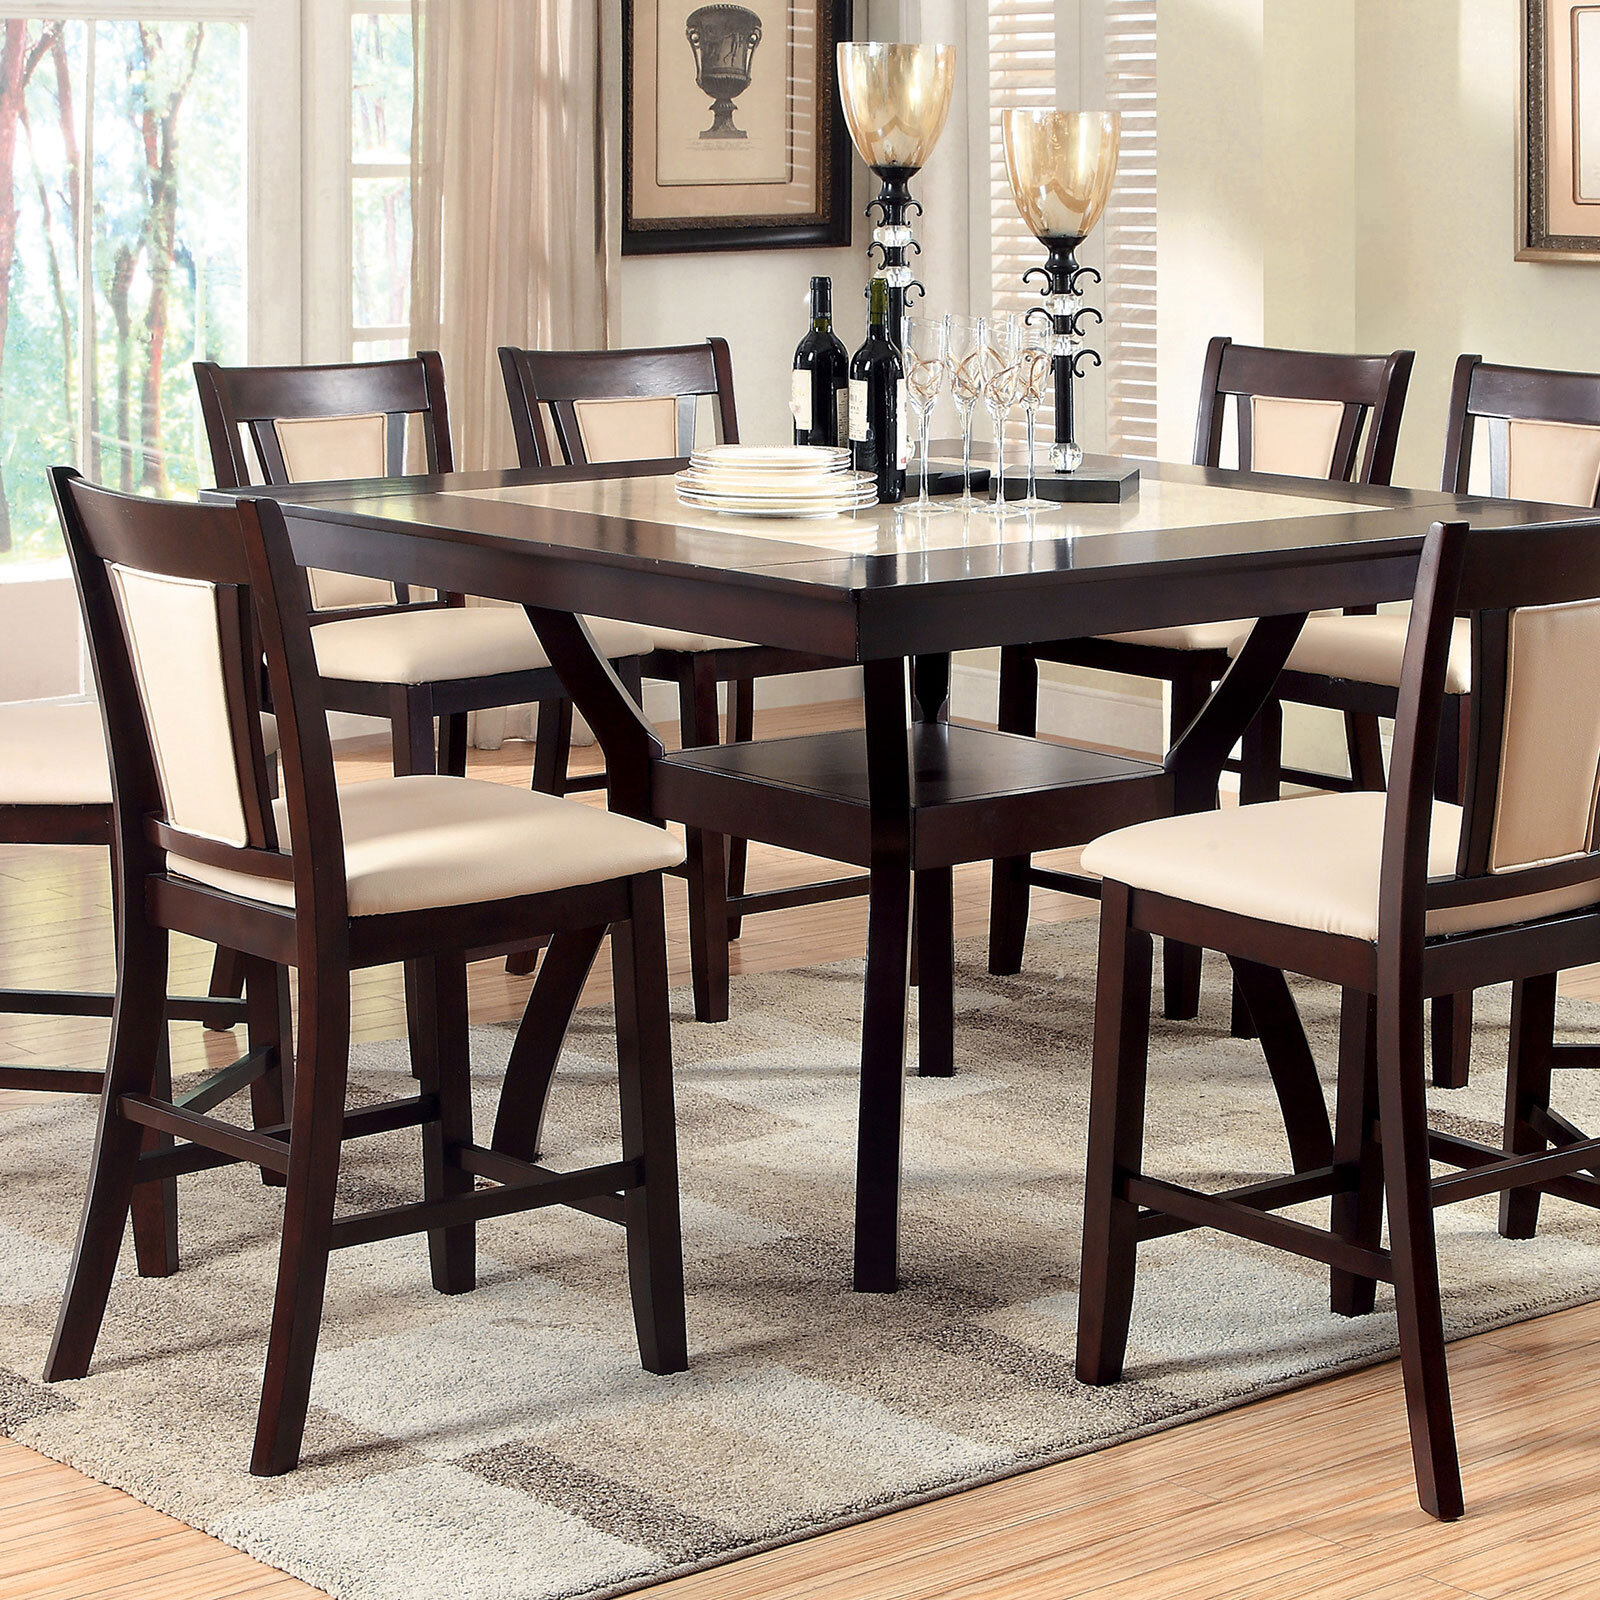 Pub Table Alcott Hill Kitchen Dining Tables You Ll Love In 2021 Wayfair